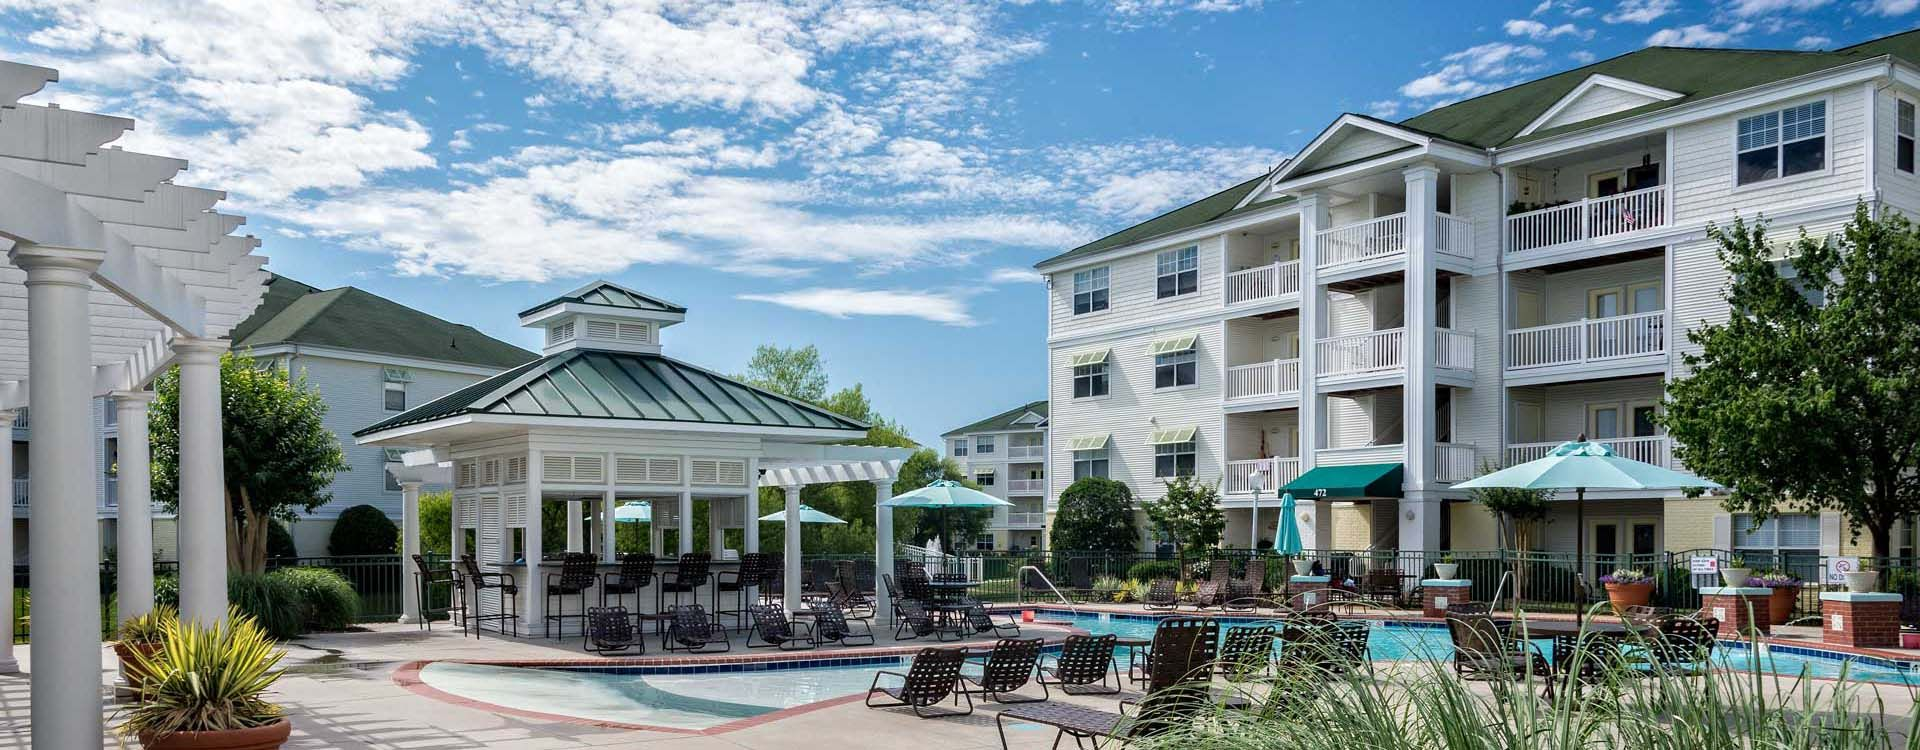 South Beach Apartments | Virginia Beach, VA